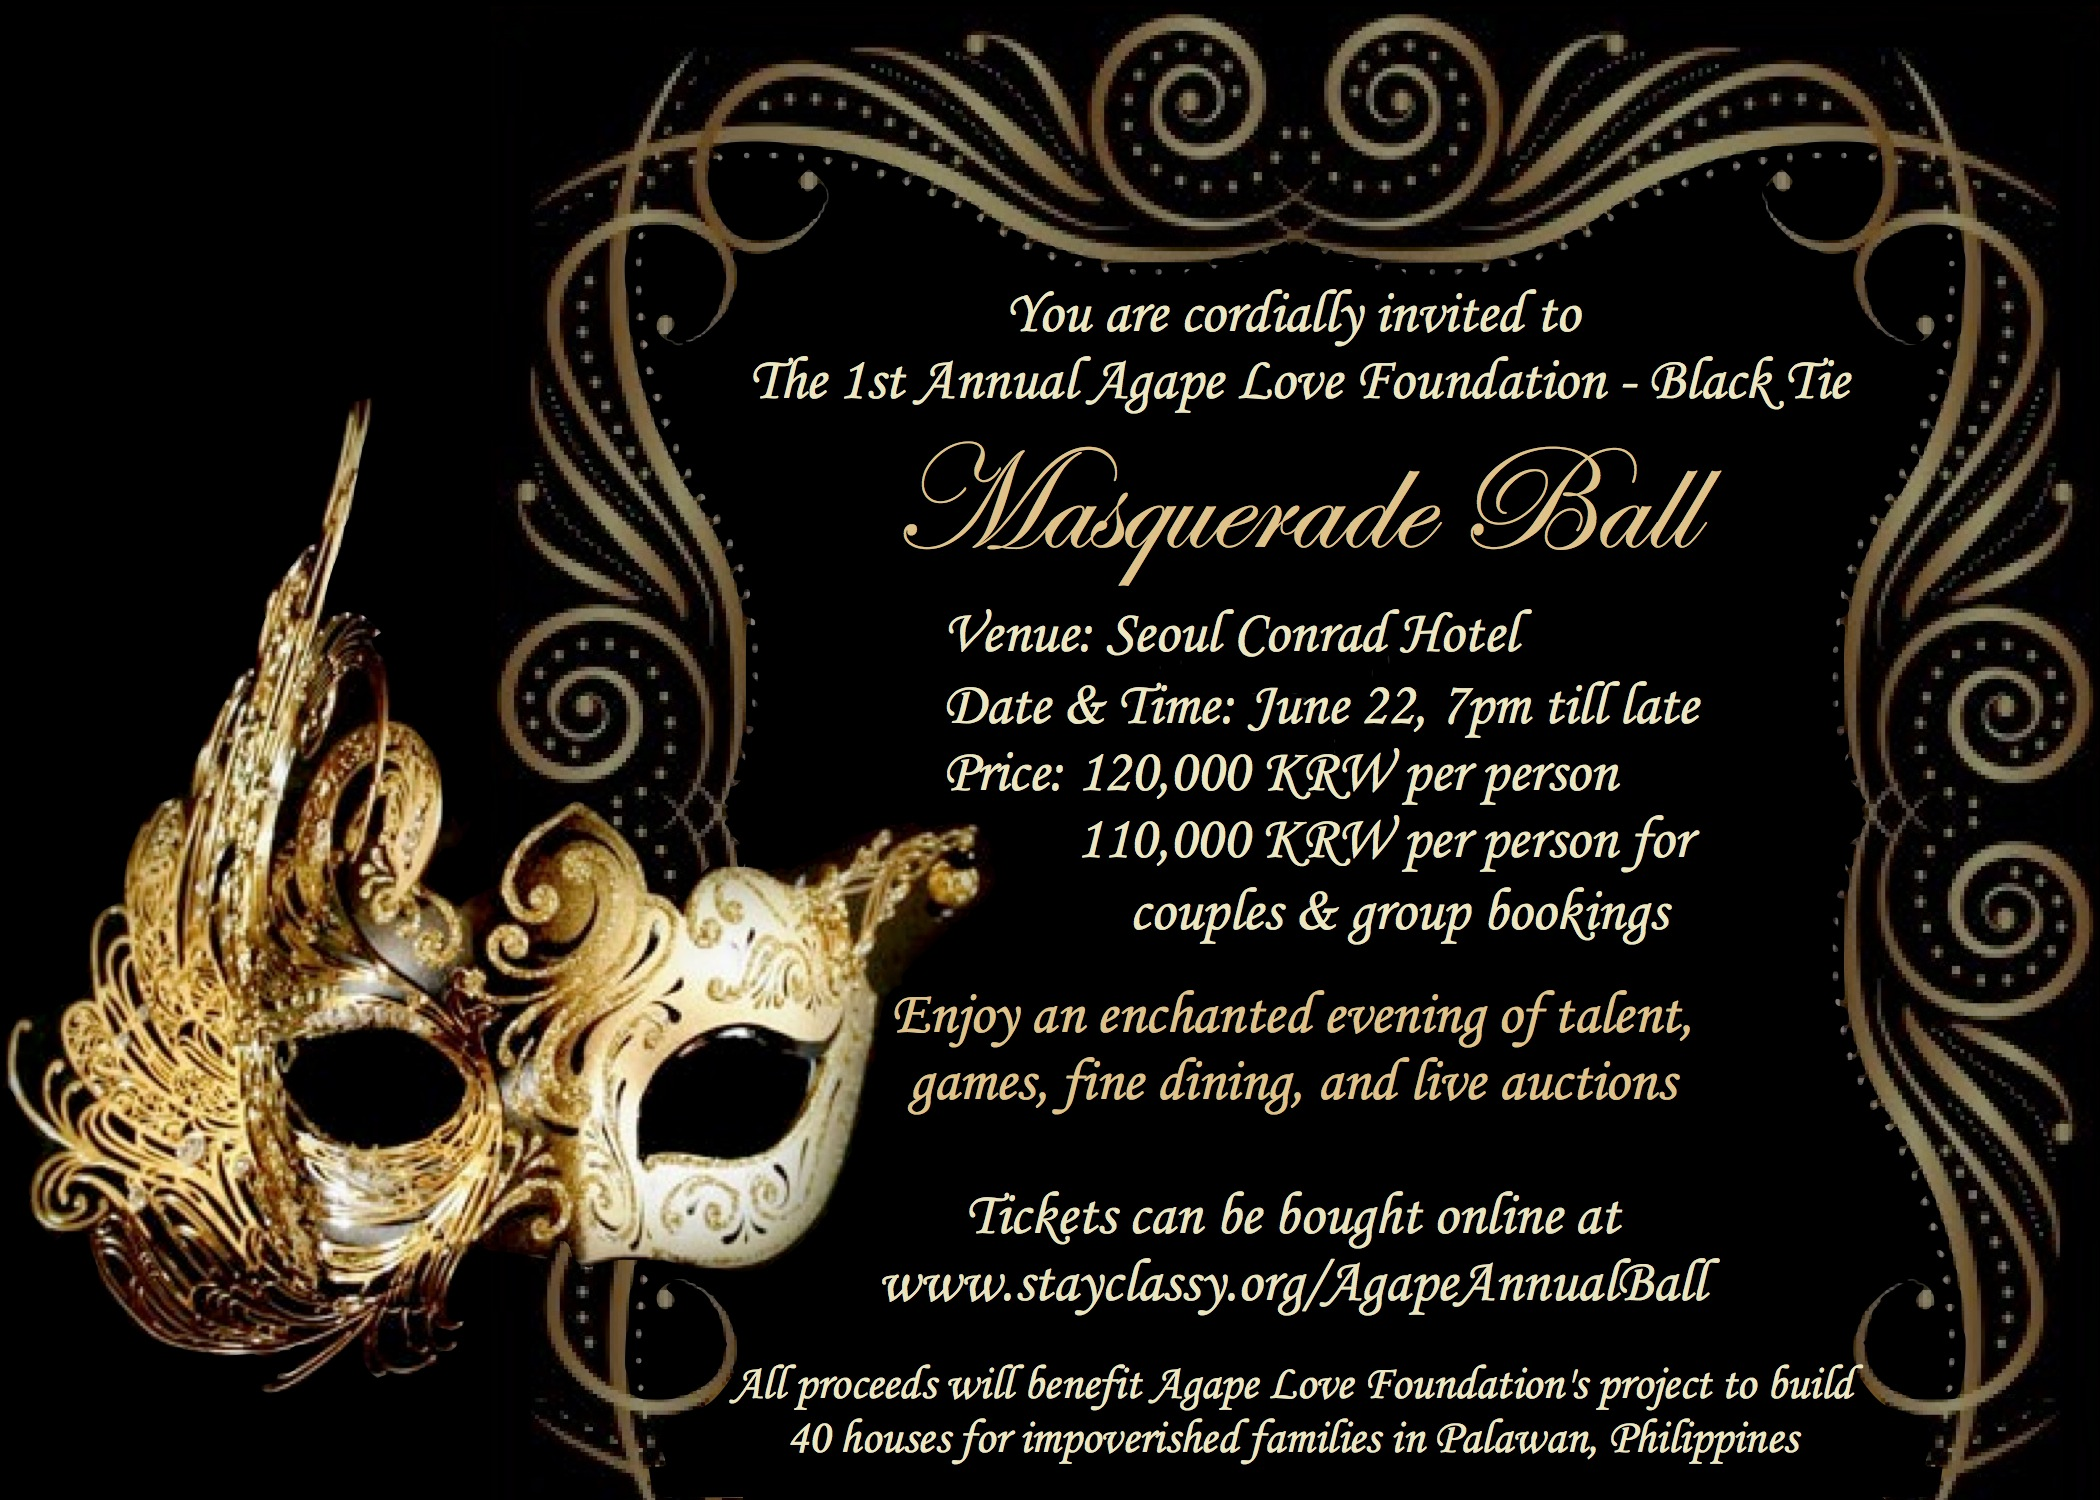 Masquerade Ball Invitations Masquerade ball invitation